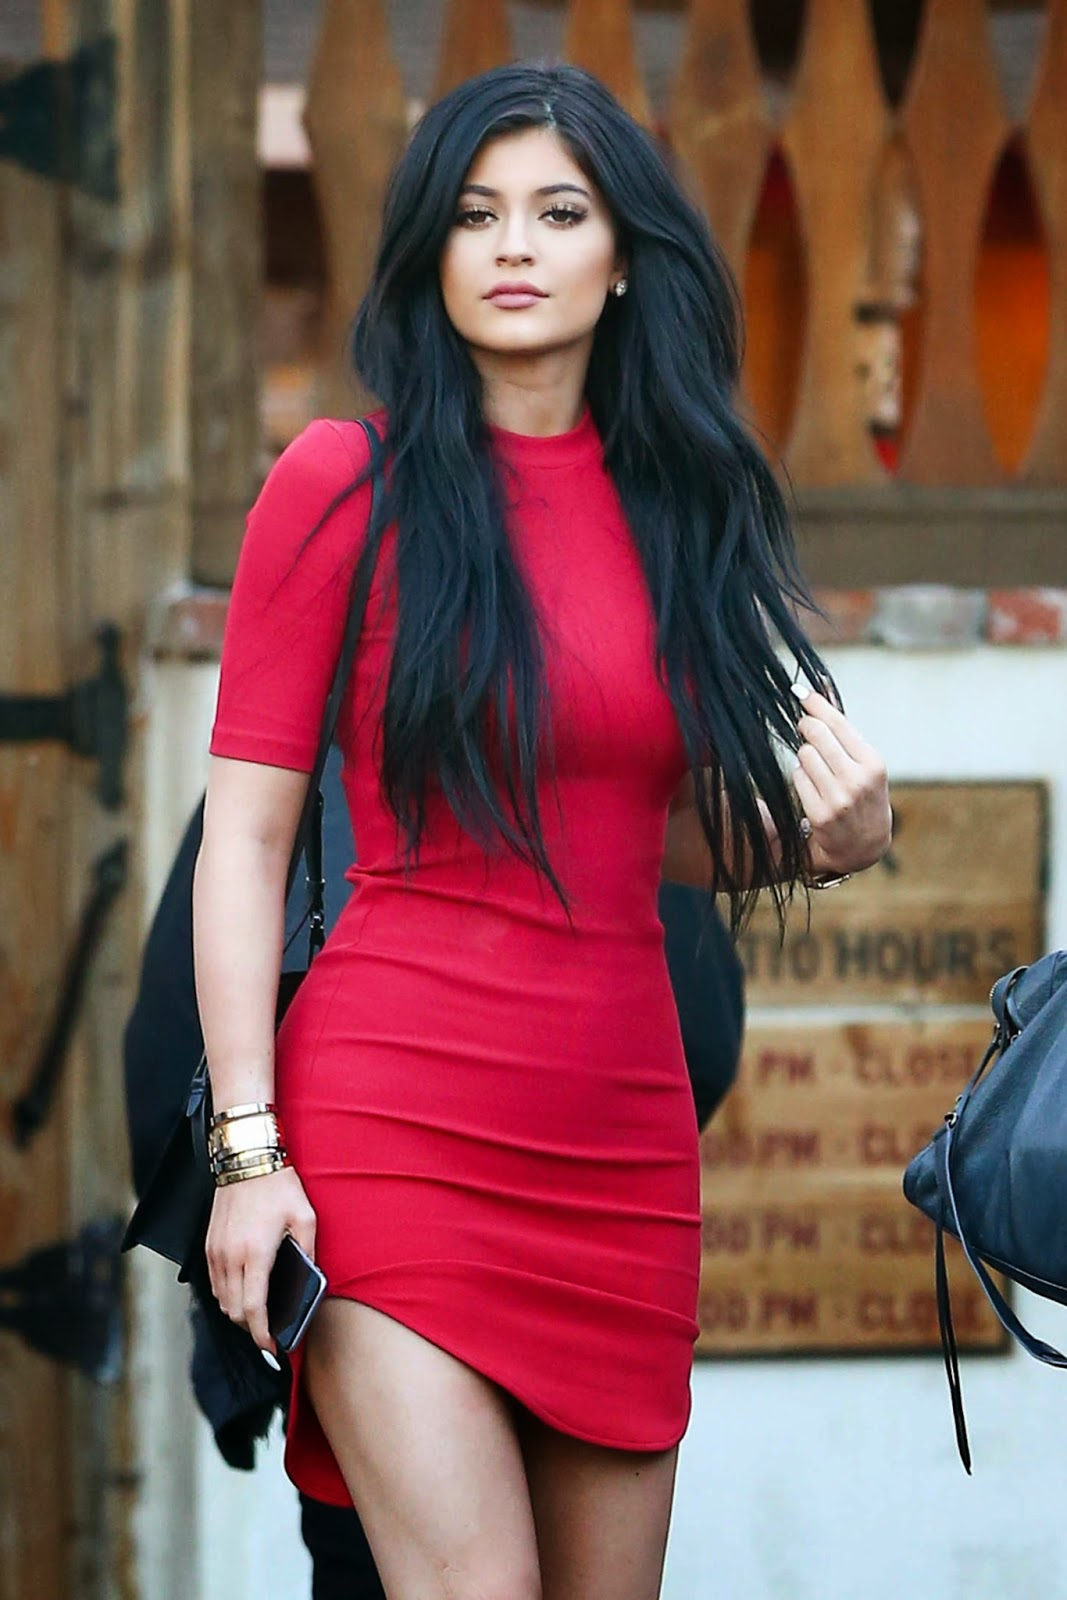 Kylie Jenner shows off legs in a figure hugging red mini dress in Calabasas